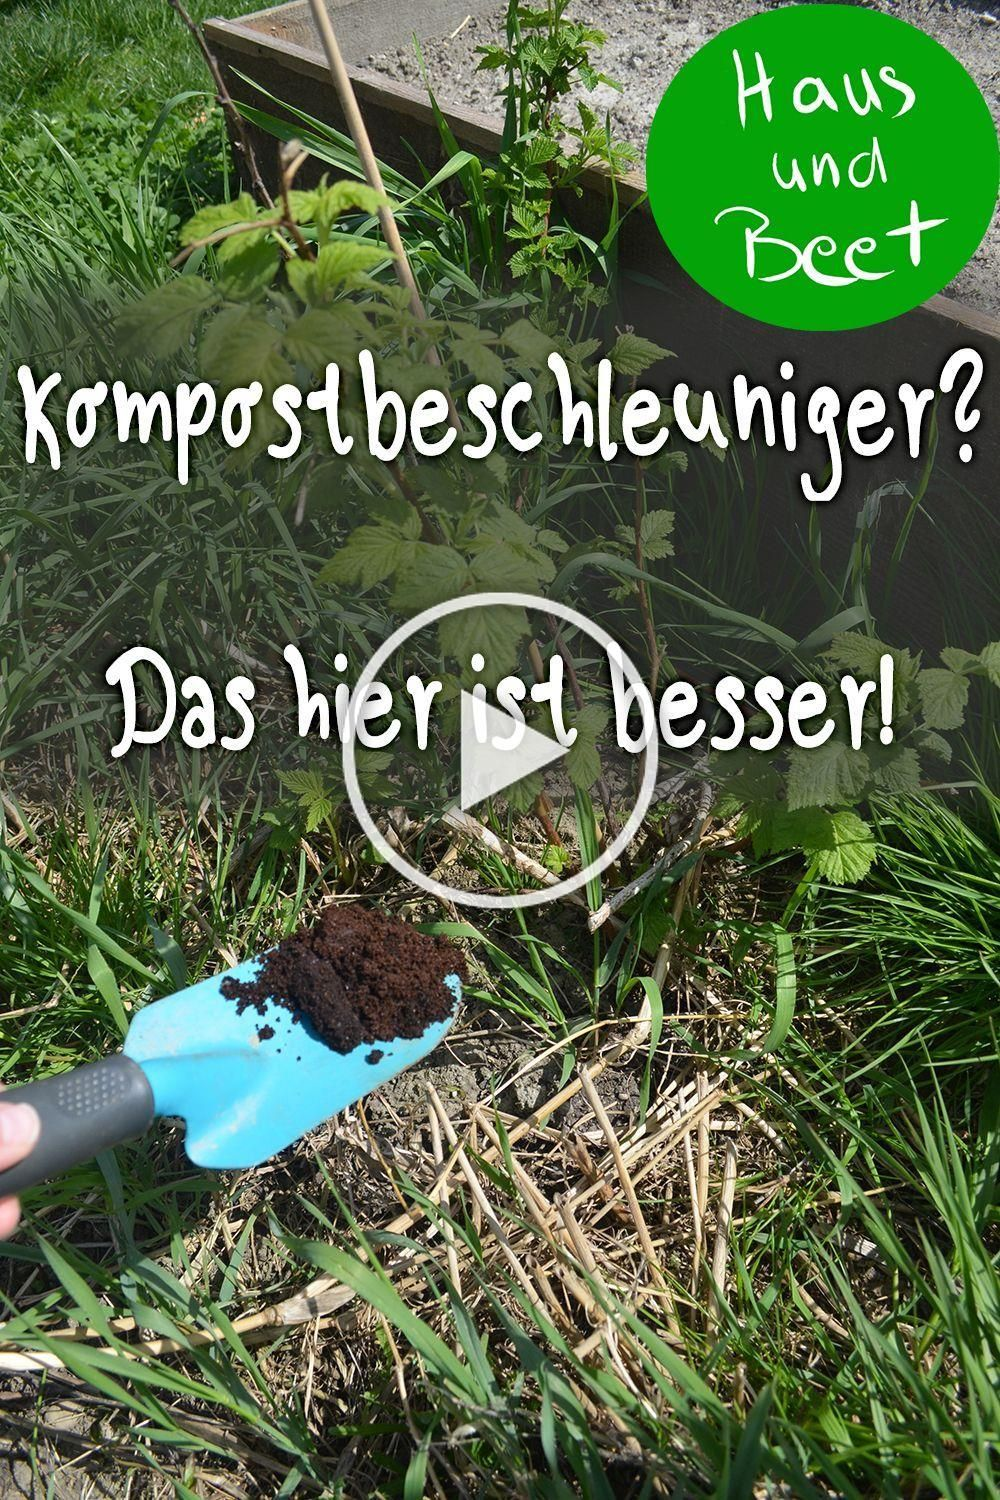 Compost accelerator  advantages and above all disadvantages  house and bed  Compost accelerator  advantages and above all disadvantages Commercially available compost acc...